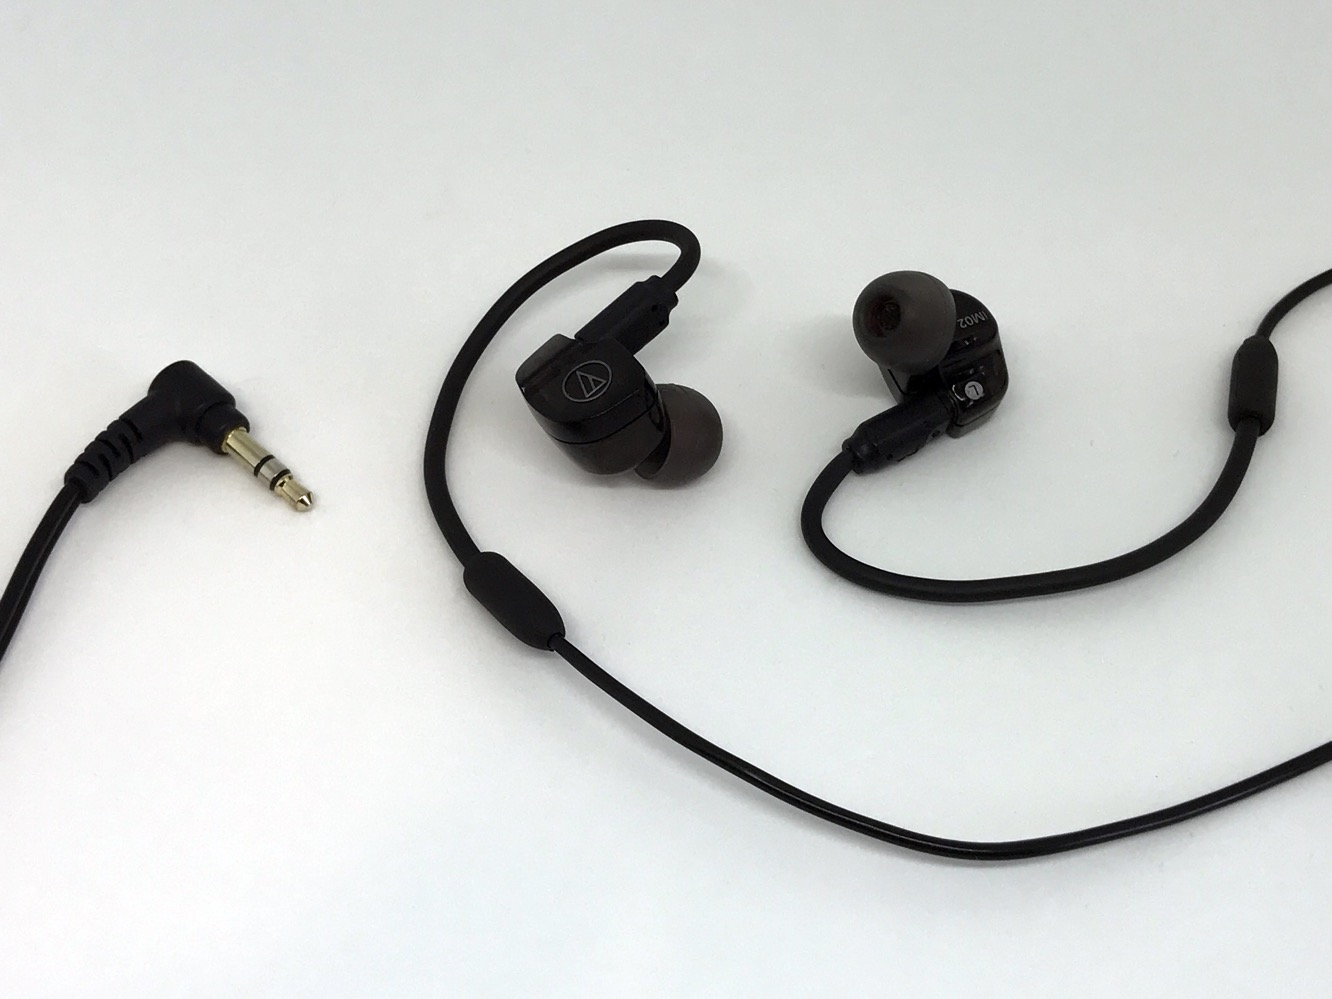 Review: Audio-Technica ATH-IM02 In-Ear Headphones